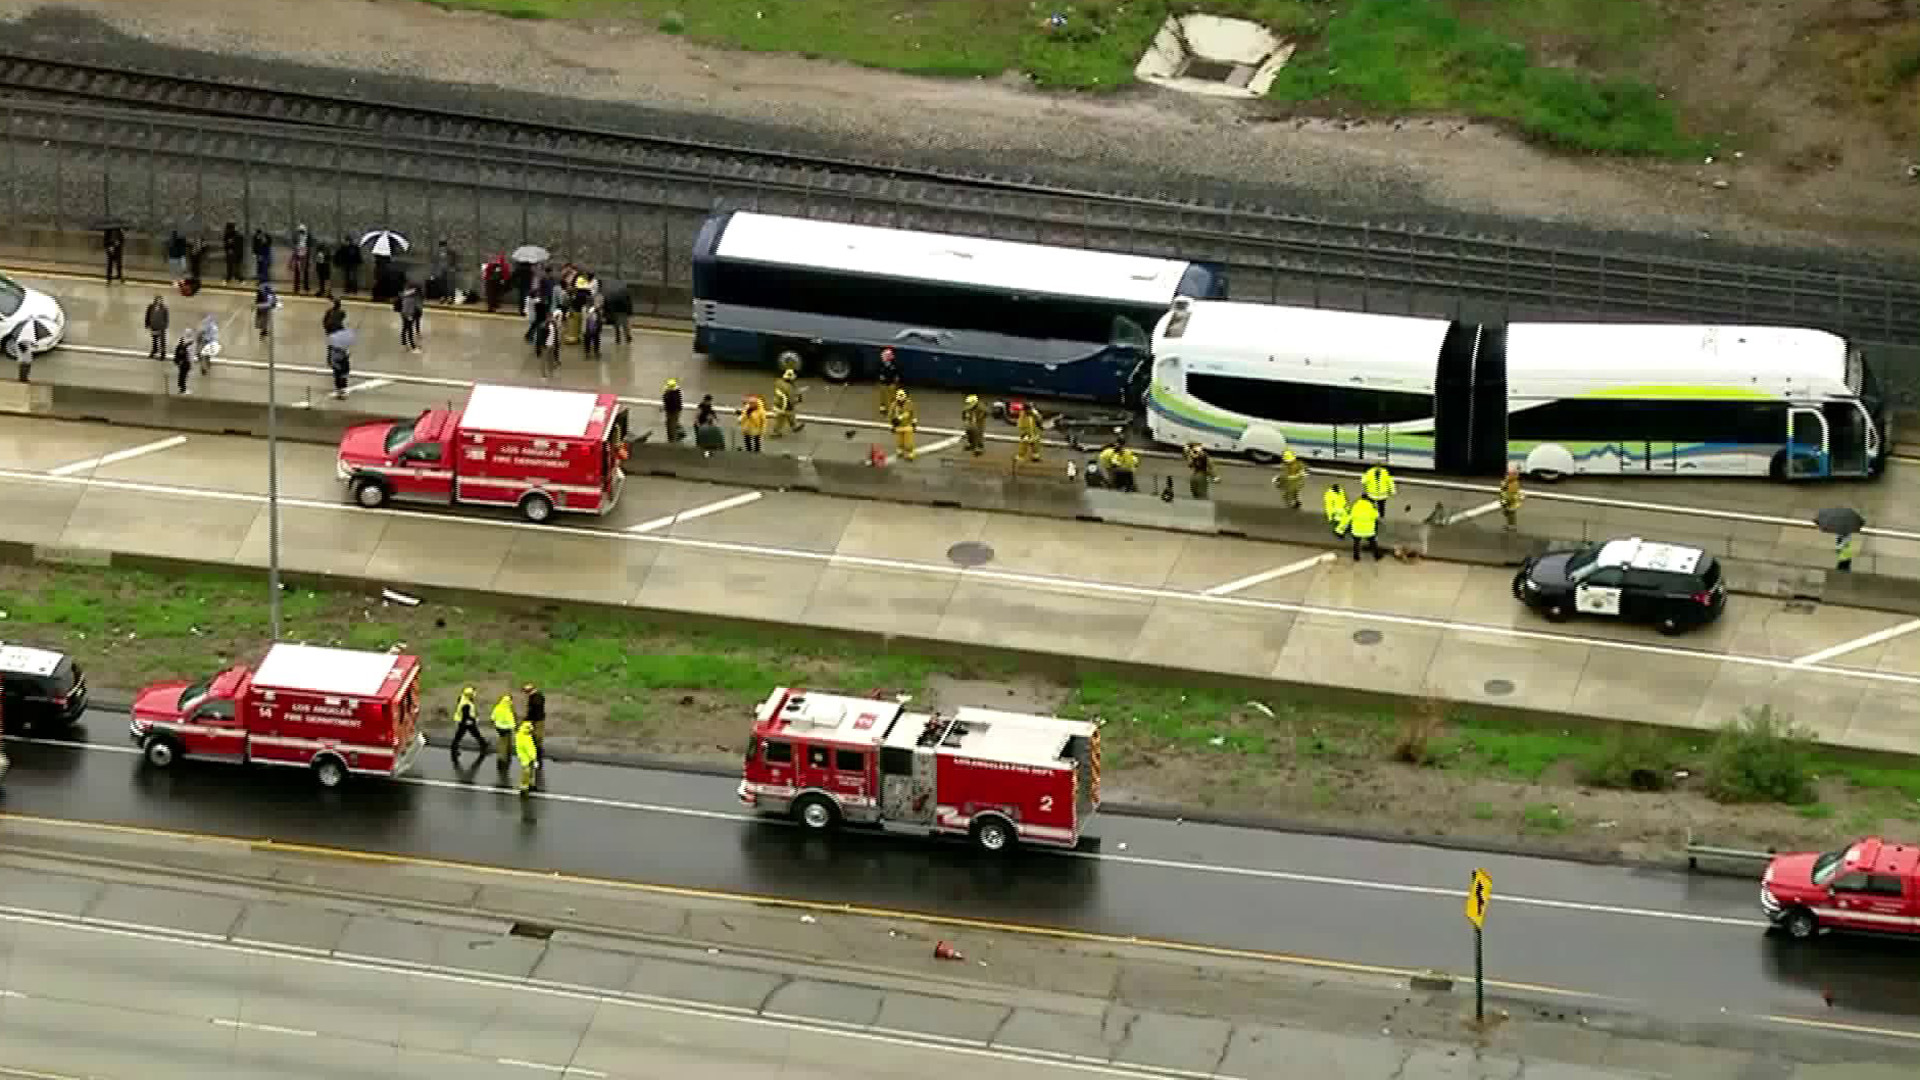 Two buses collided on the 10 Freeway on March 22, 2018. (Credit: KTLA)